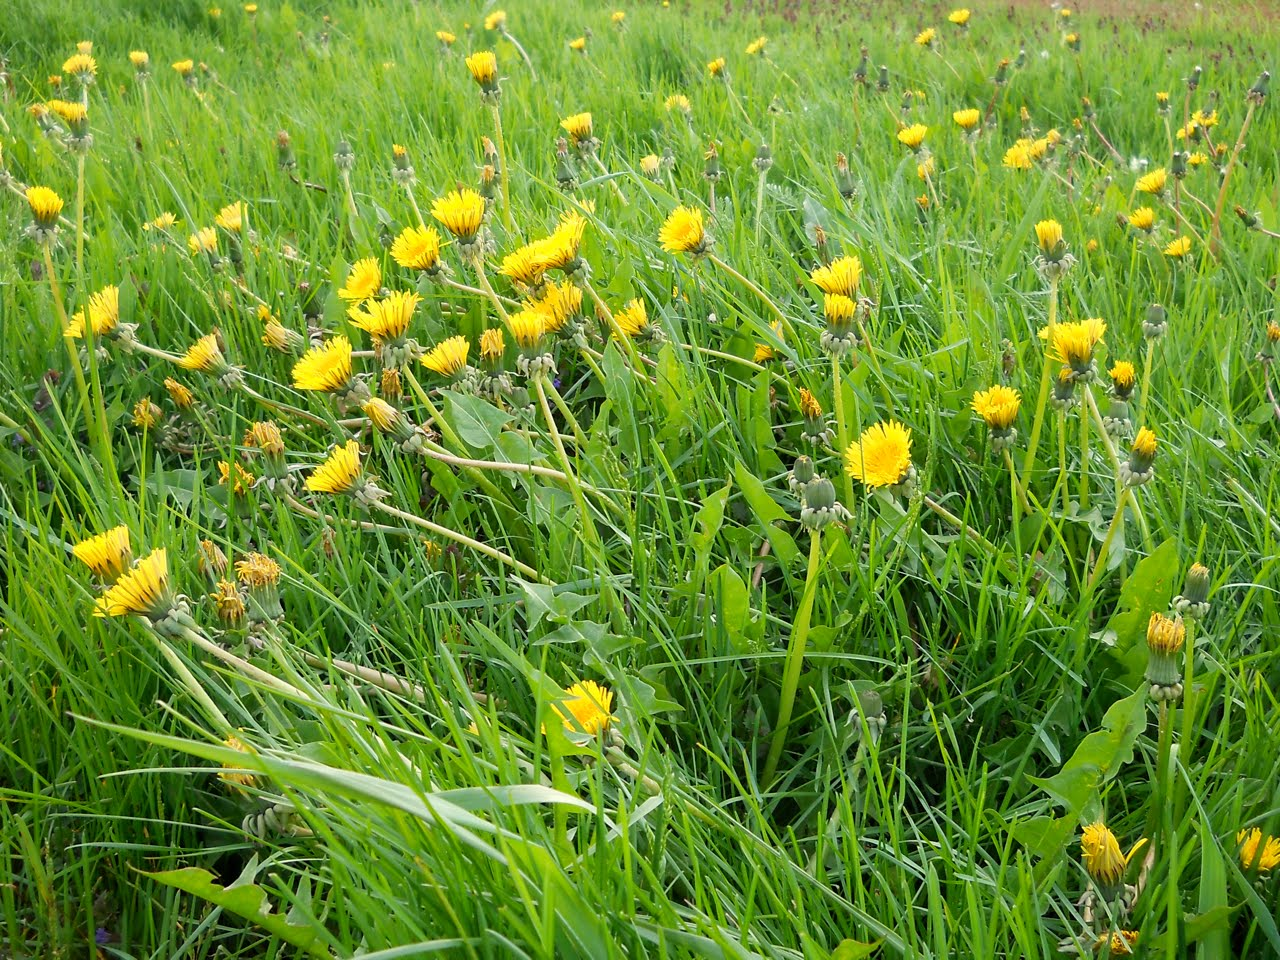 Canoe corner my so called lawn dandelions i know most of you probably consider this your number one hated weed but i like their bright yellow flowers and they taste good mightylinksfo